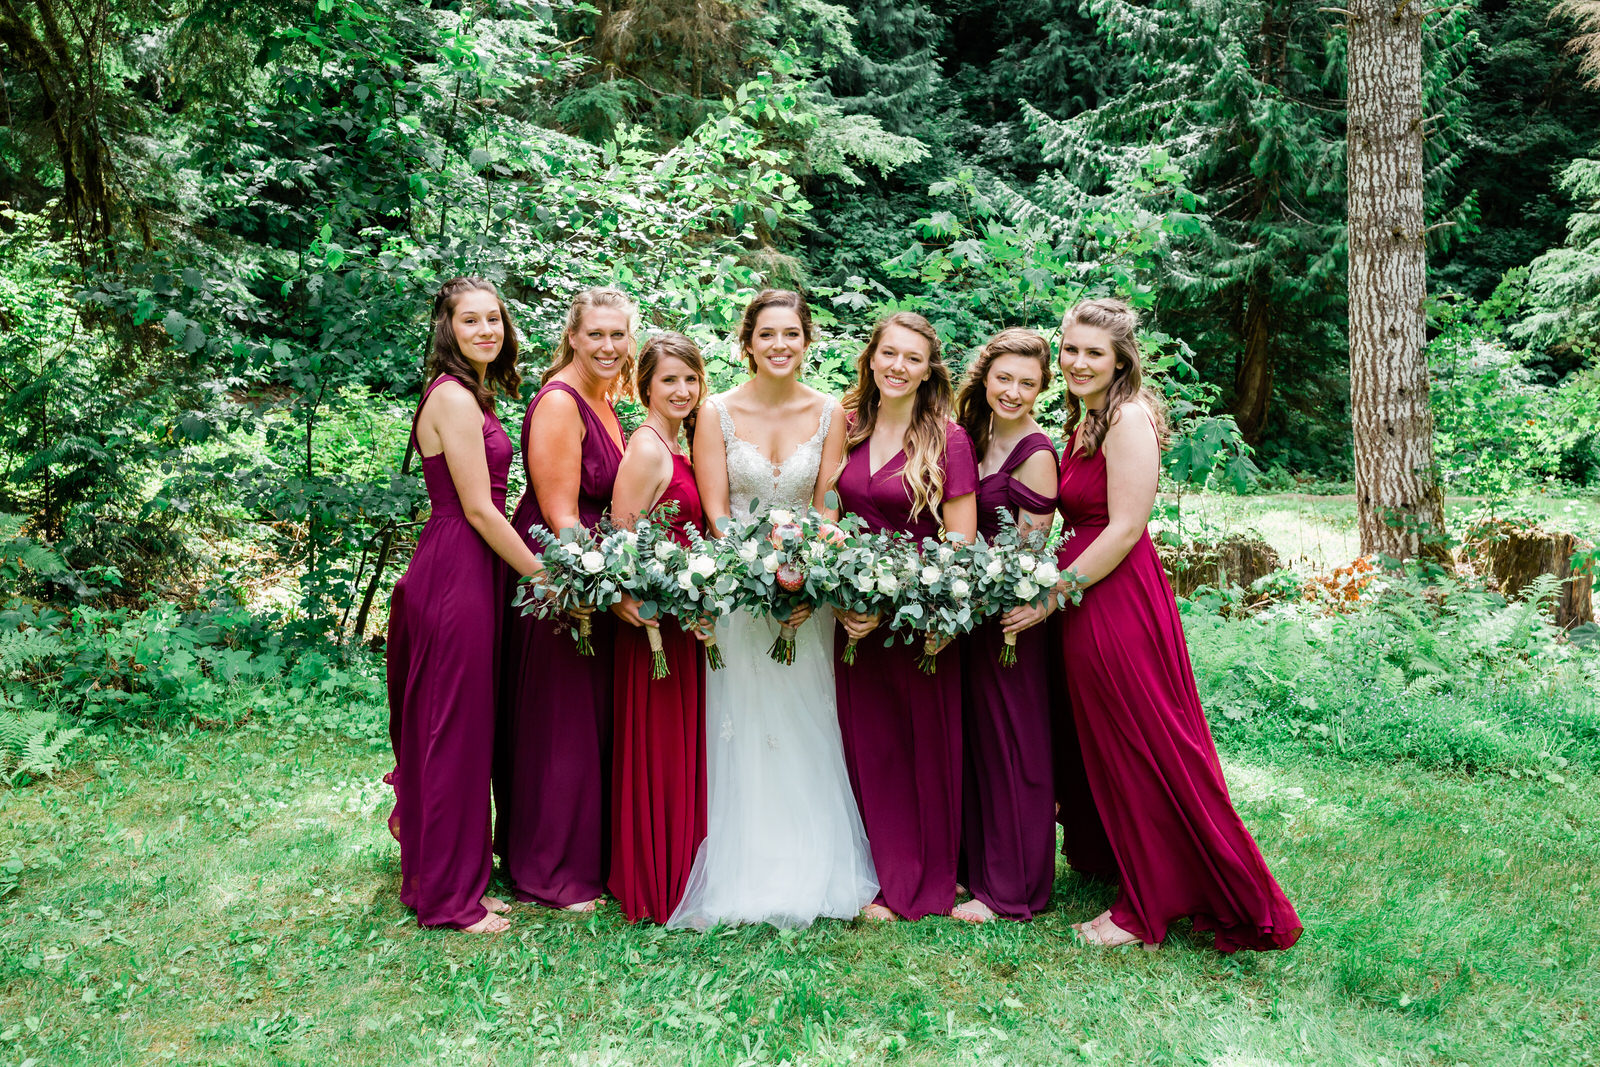 bride & her bridal party in the forest